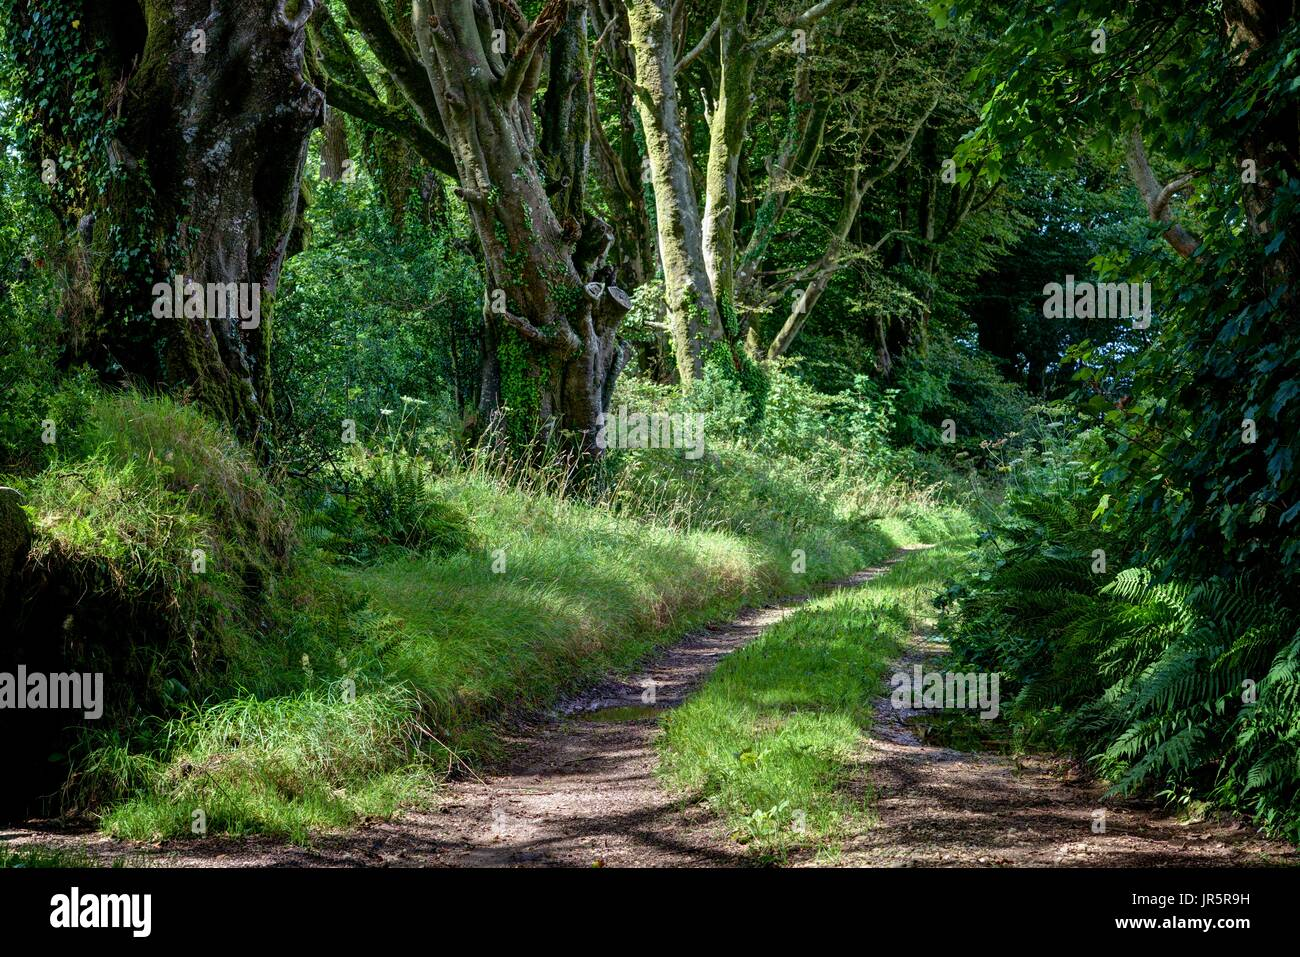 Horizontal landscape of a typically English countryside farm track leading off a quiet rural lane. Lush greenery lined with old broad leaved trees - Stock Image